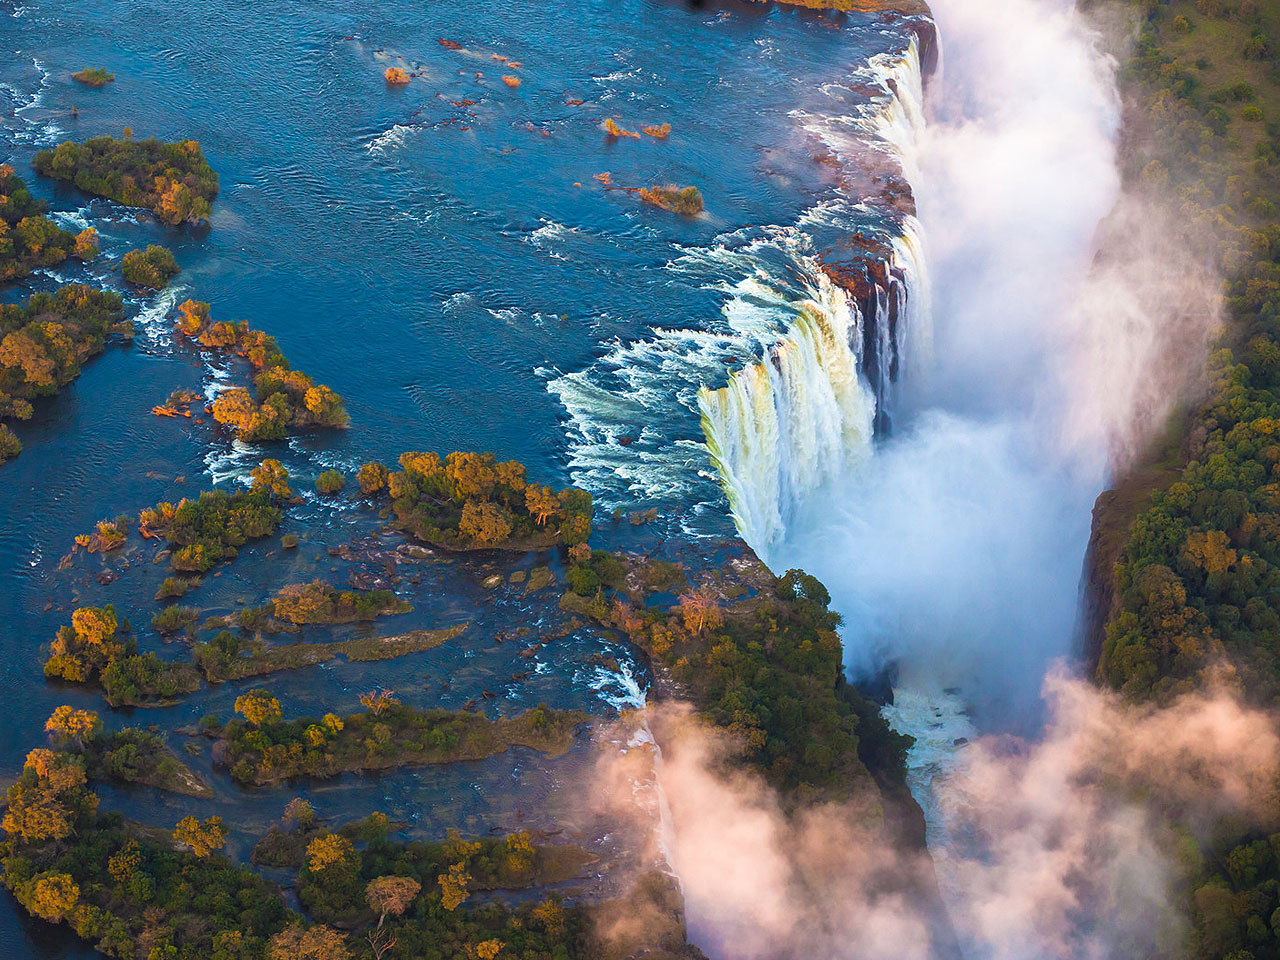 Victoria Falls and the mist coming from the gorge taken from above.